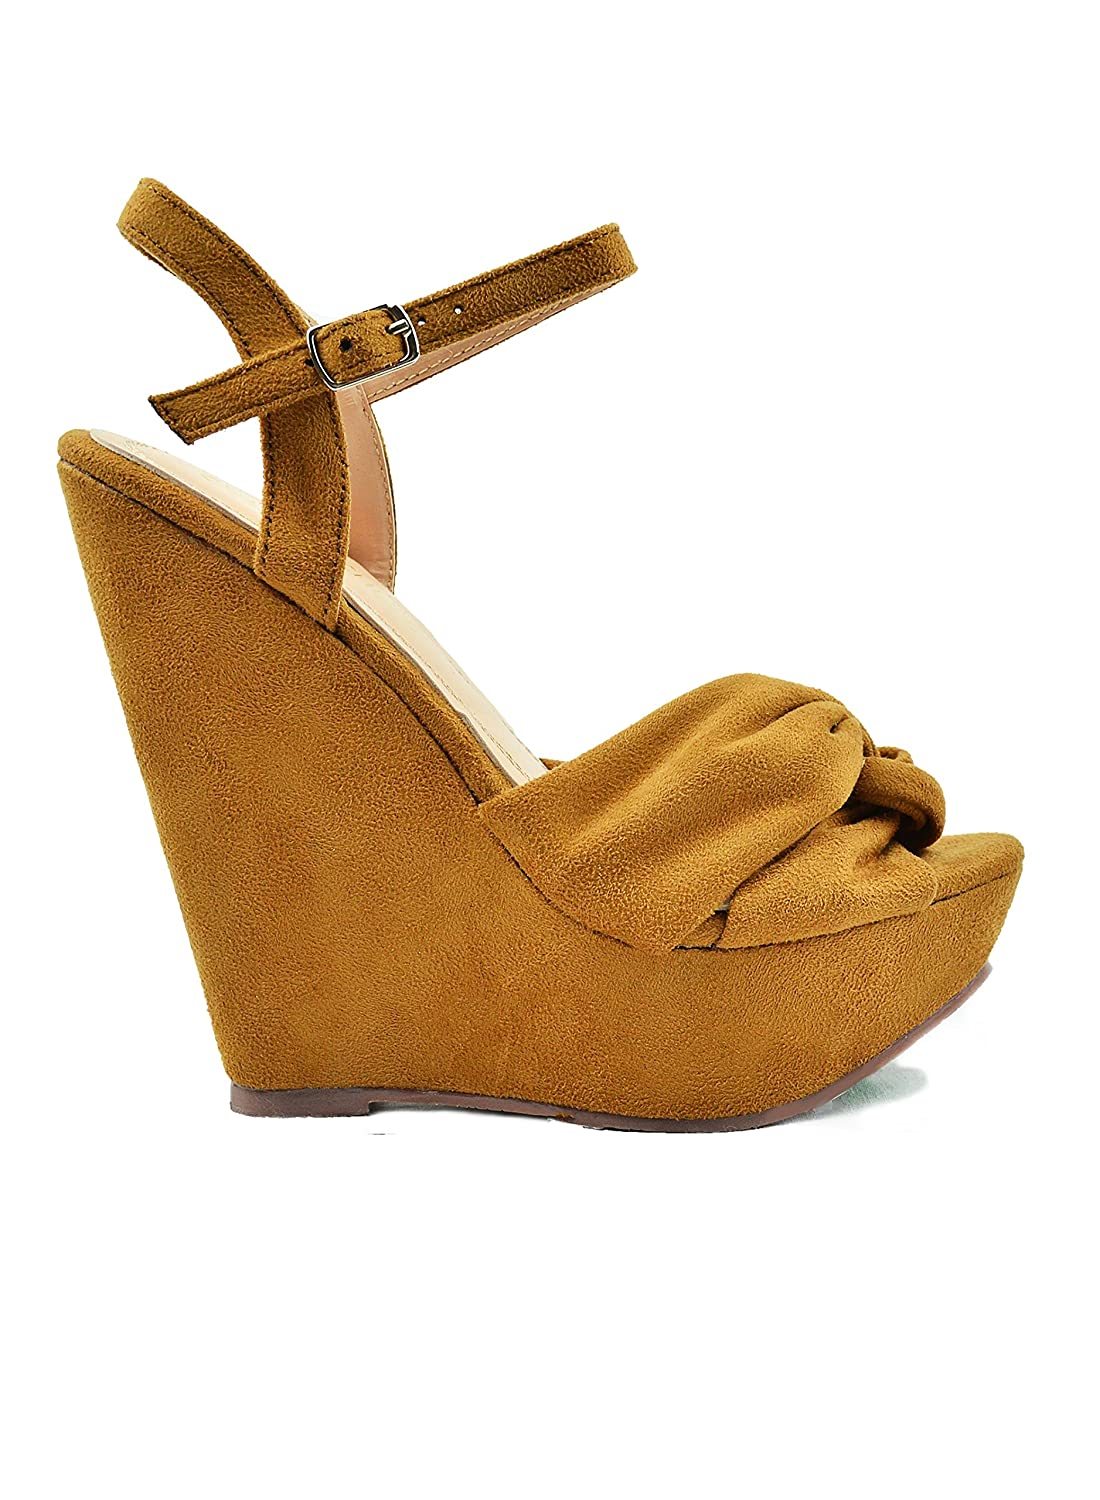 Chase Back & Chloe Gita-1 Sling Back Chase Criss-Cross Bow Detail Women's Wedge Sandal B07D96LNSF 8 M US|Camel 46ae90